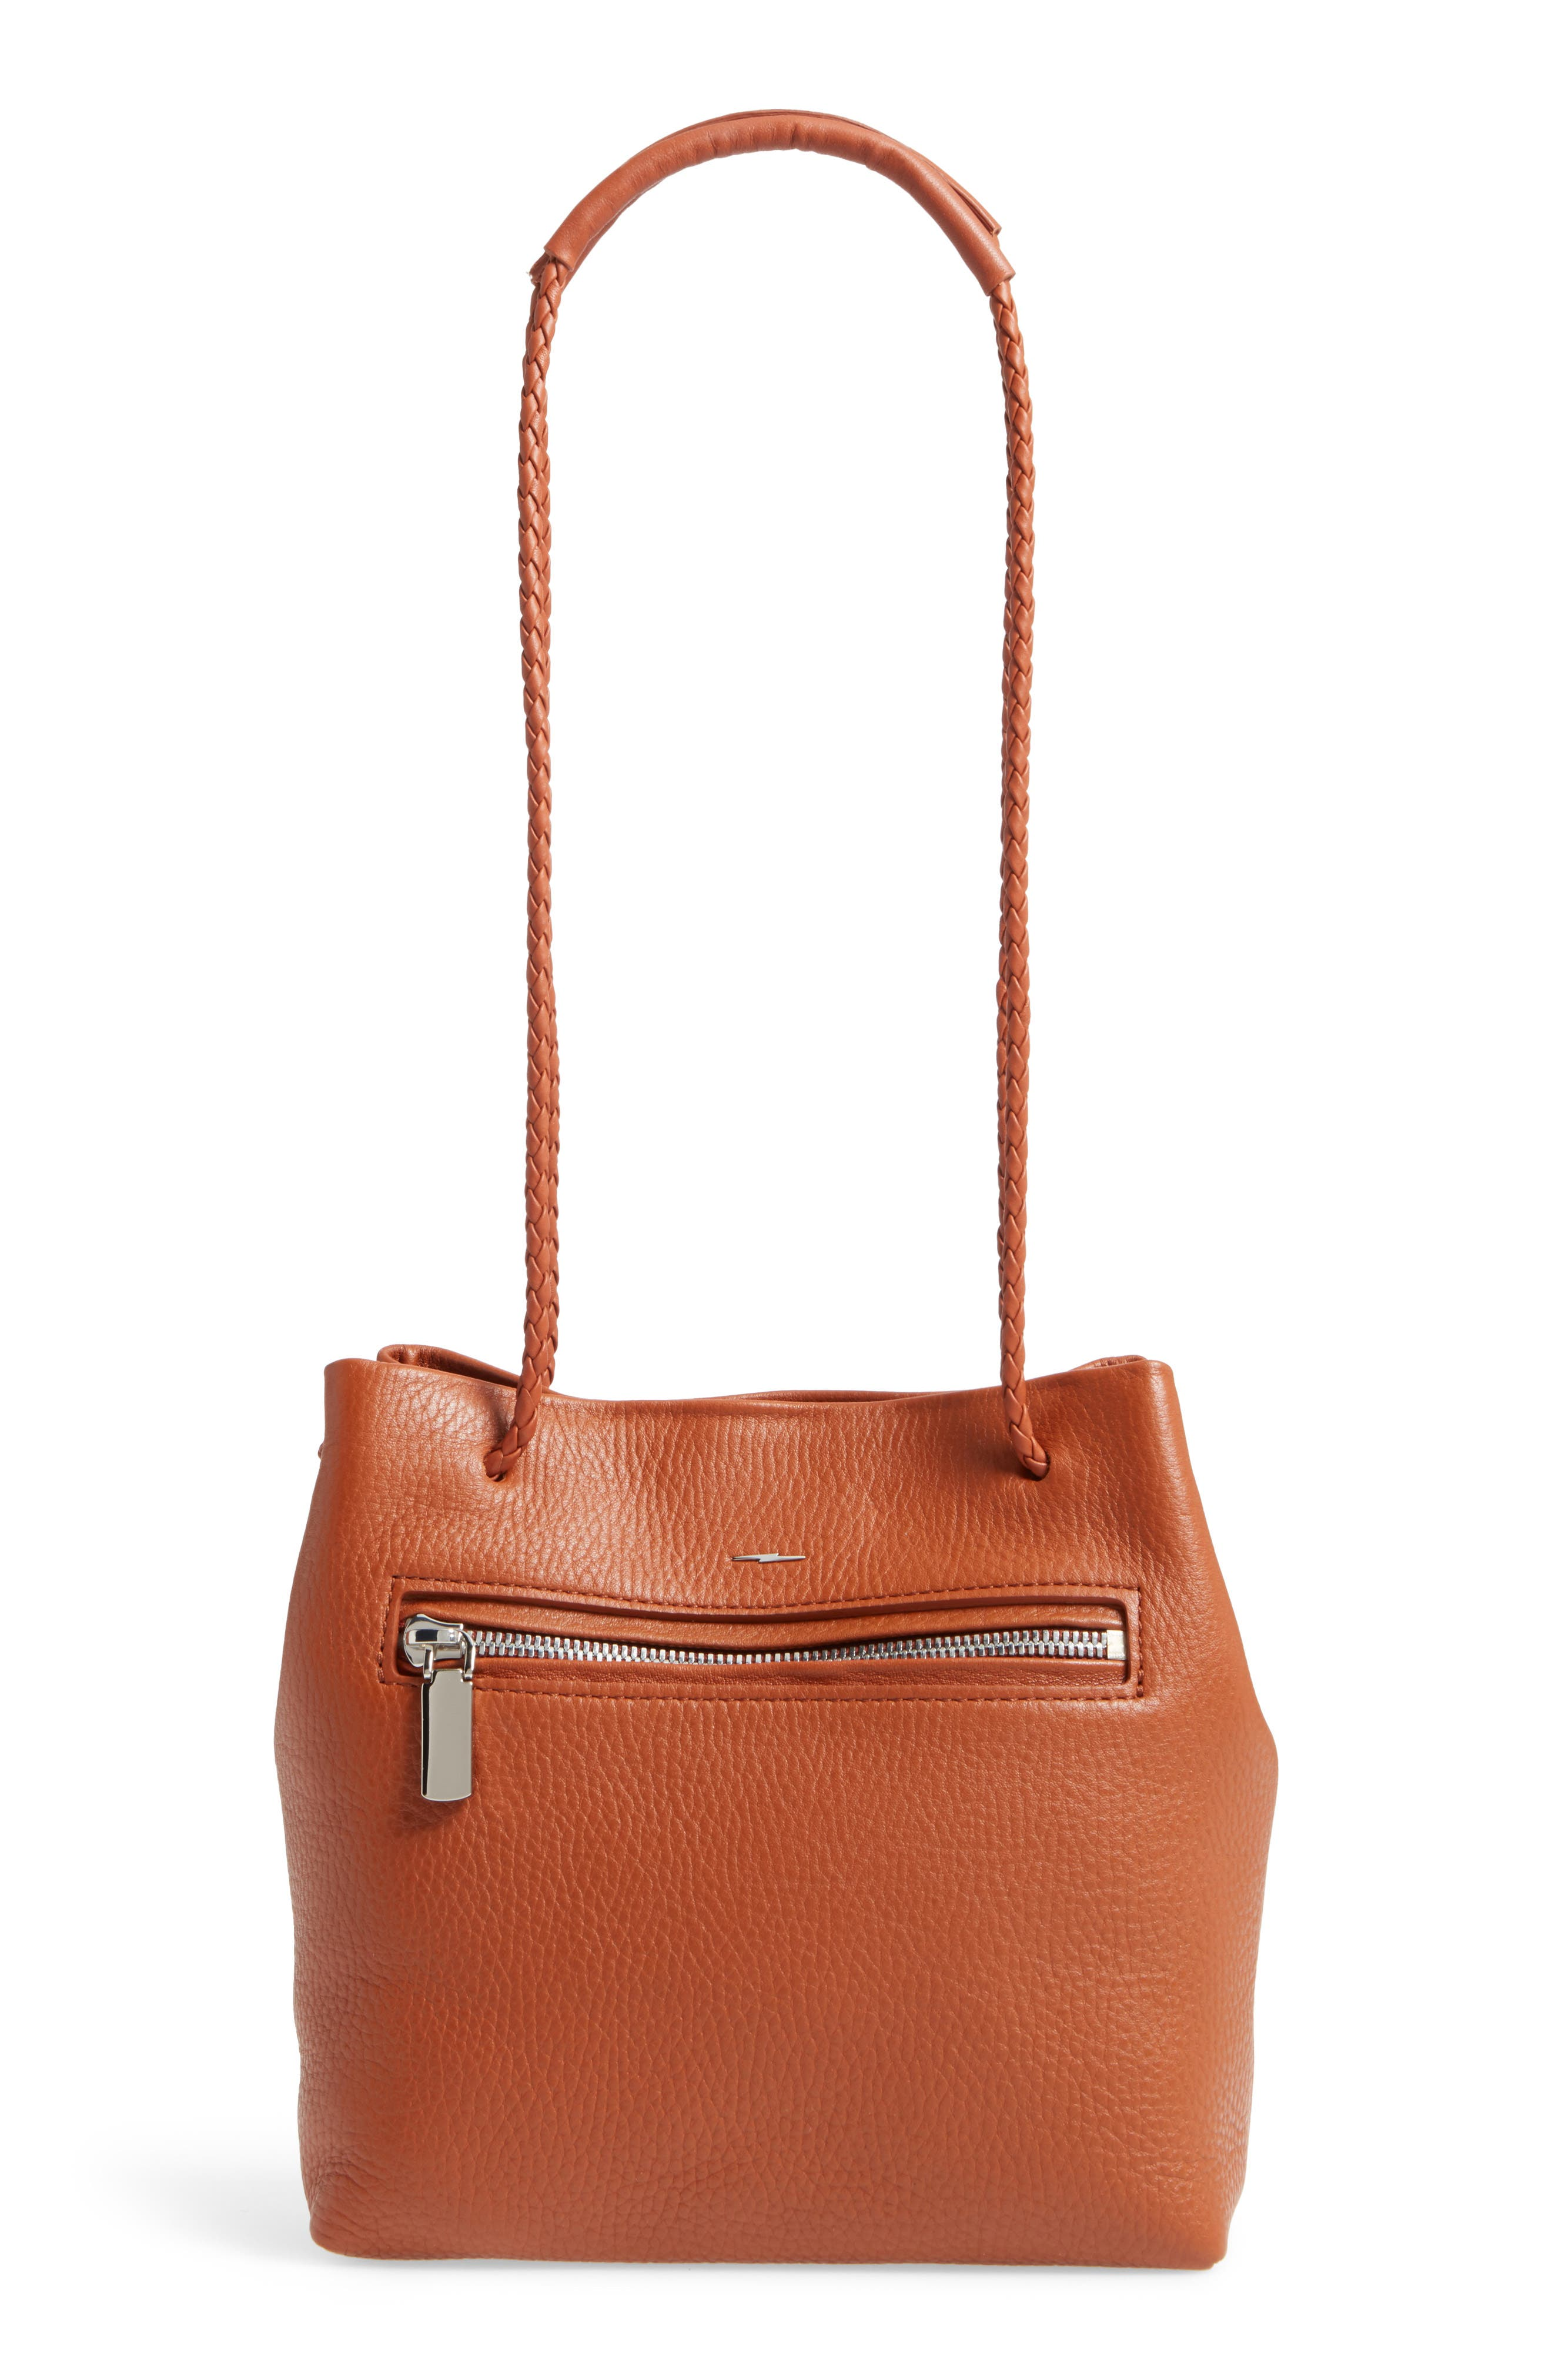 Alternate Image 1 Selected - Shinola Mini Pebbled Leather Drawstring Crossbody Bag